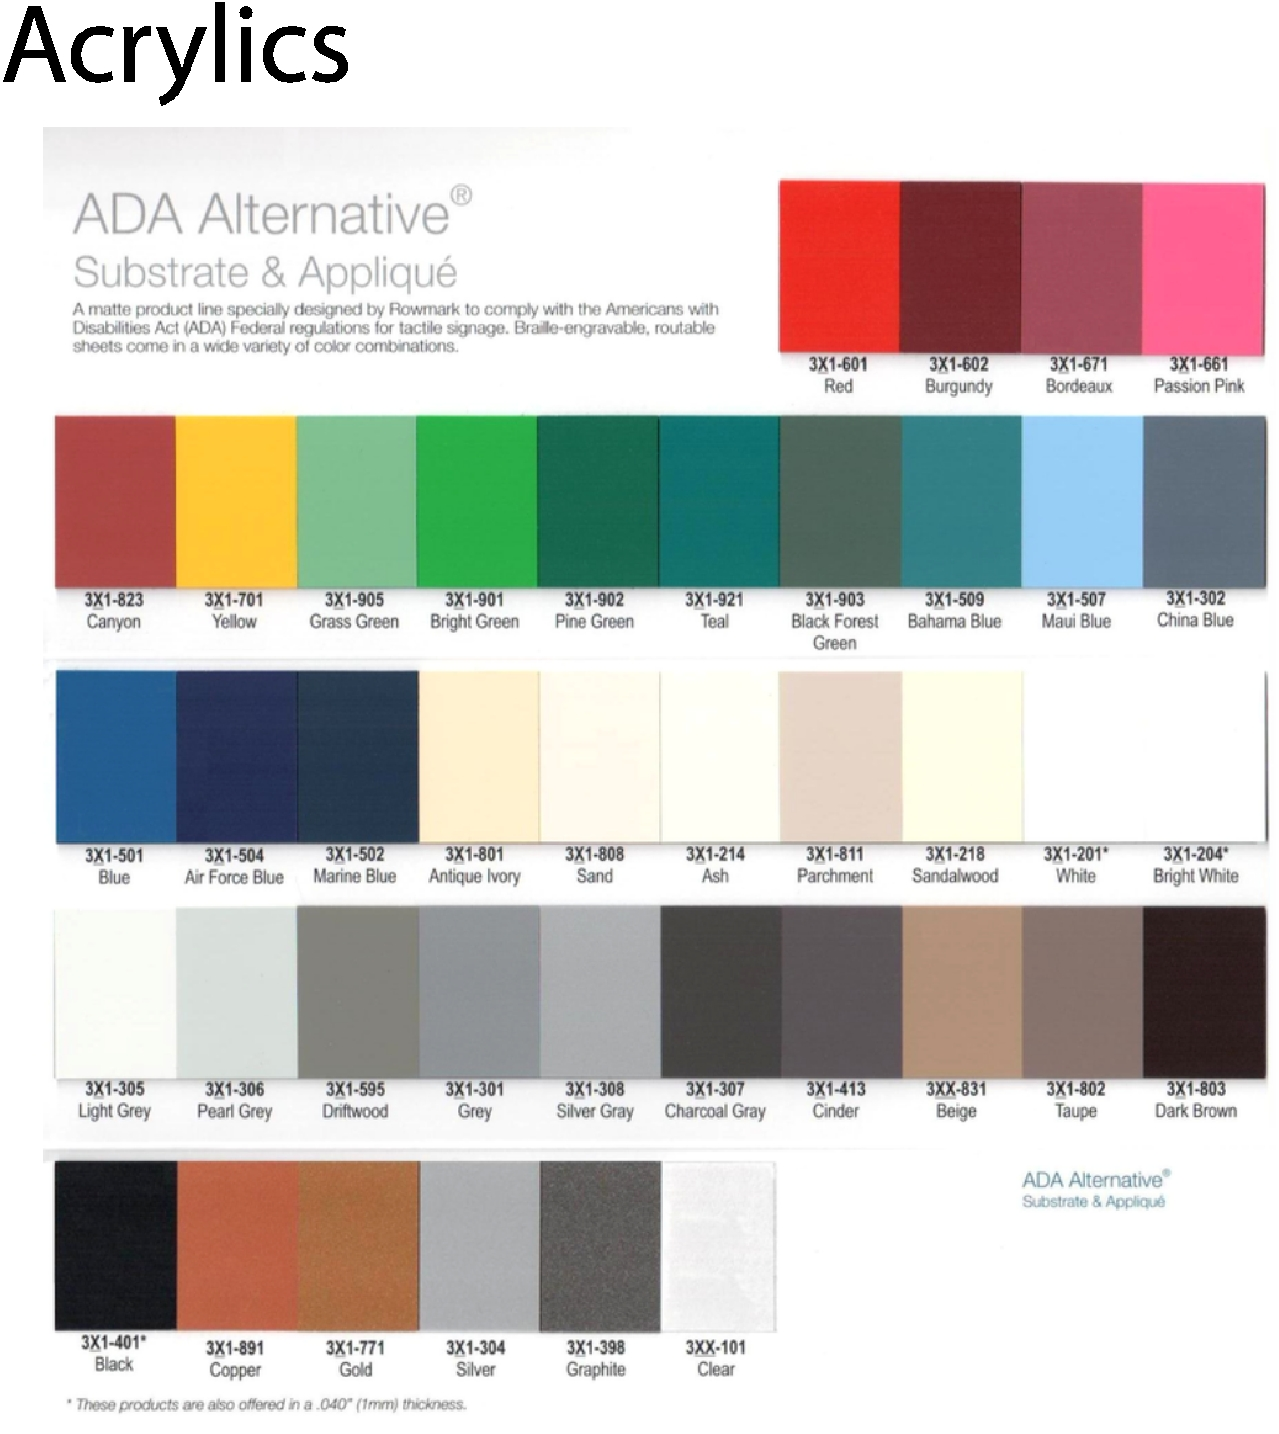 ADA Alternatives Substrate Chart